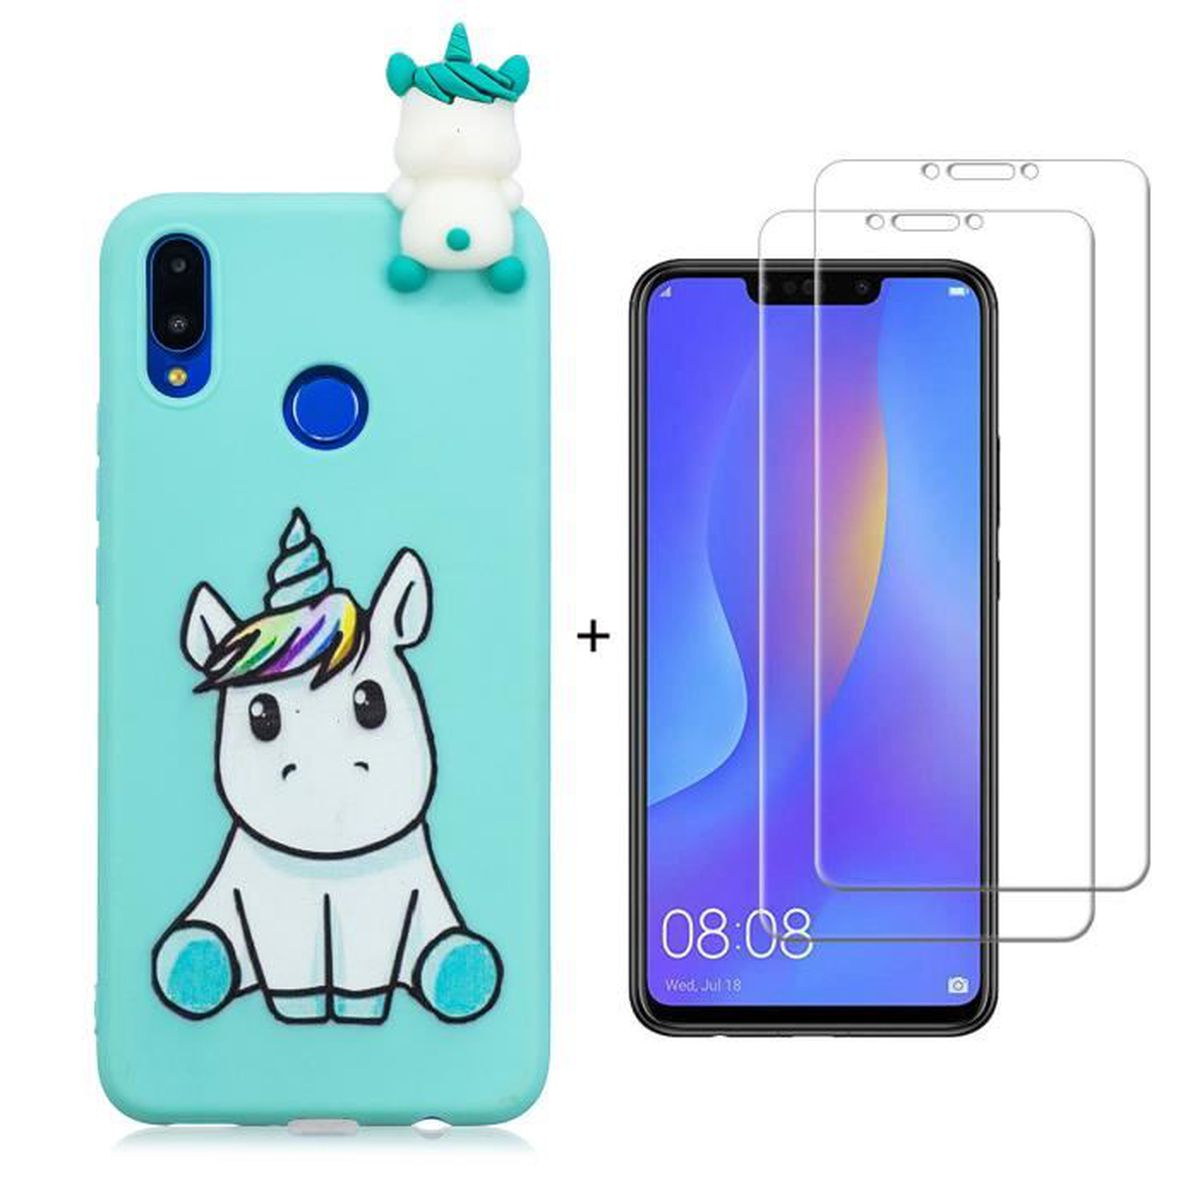 coque silicone huawei p smart plus